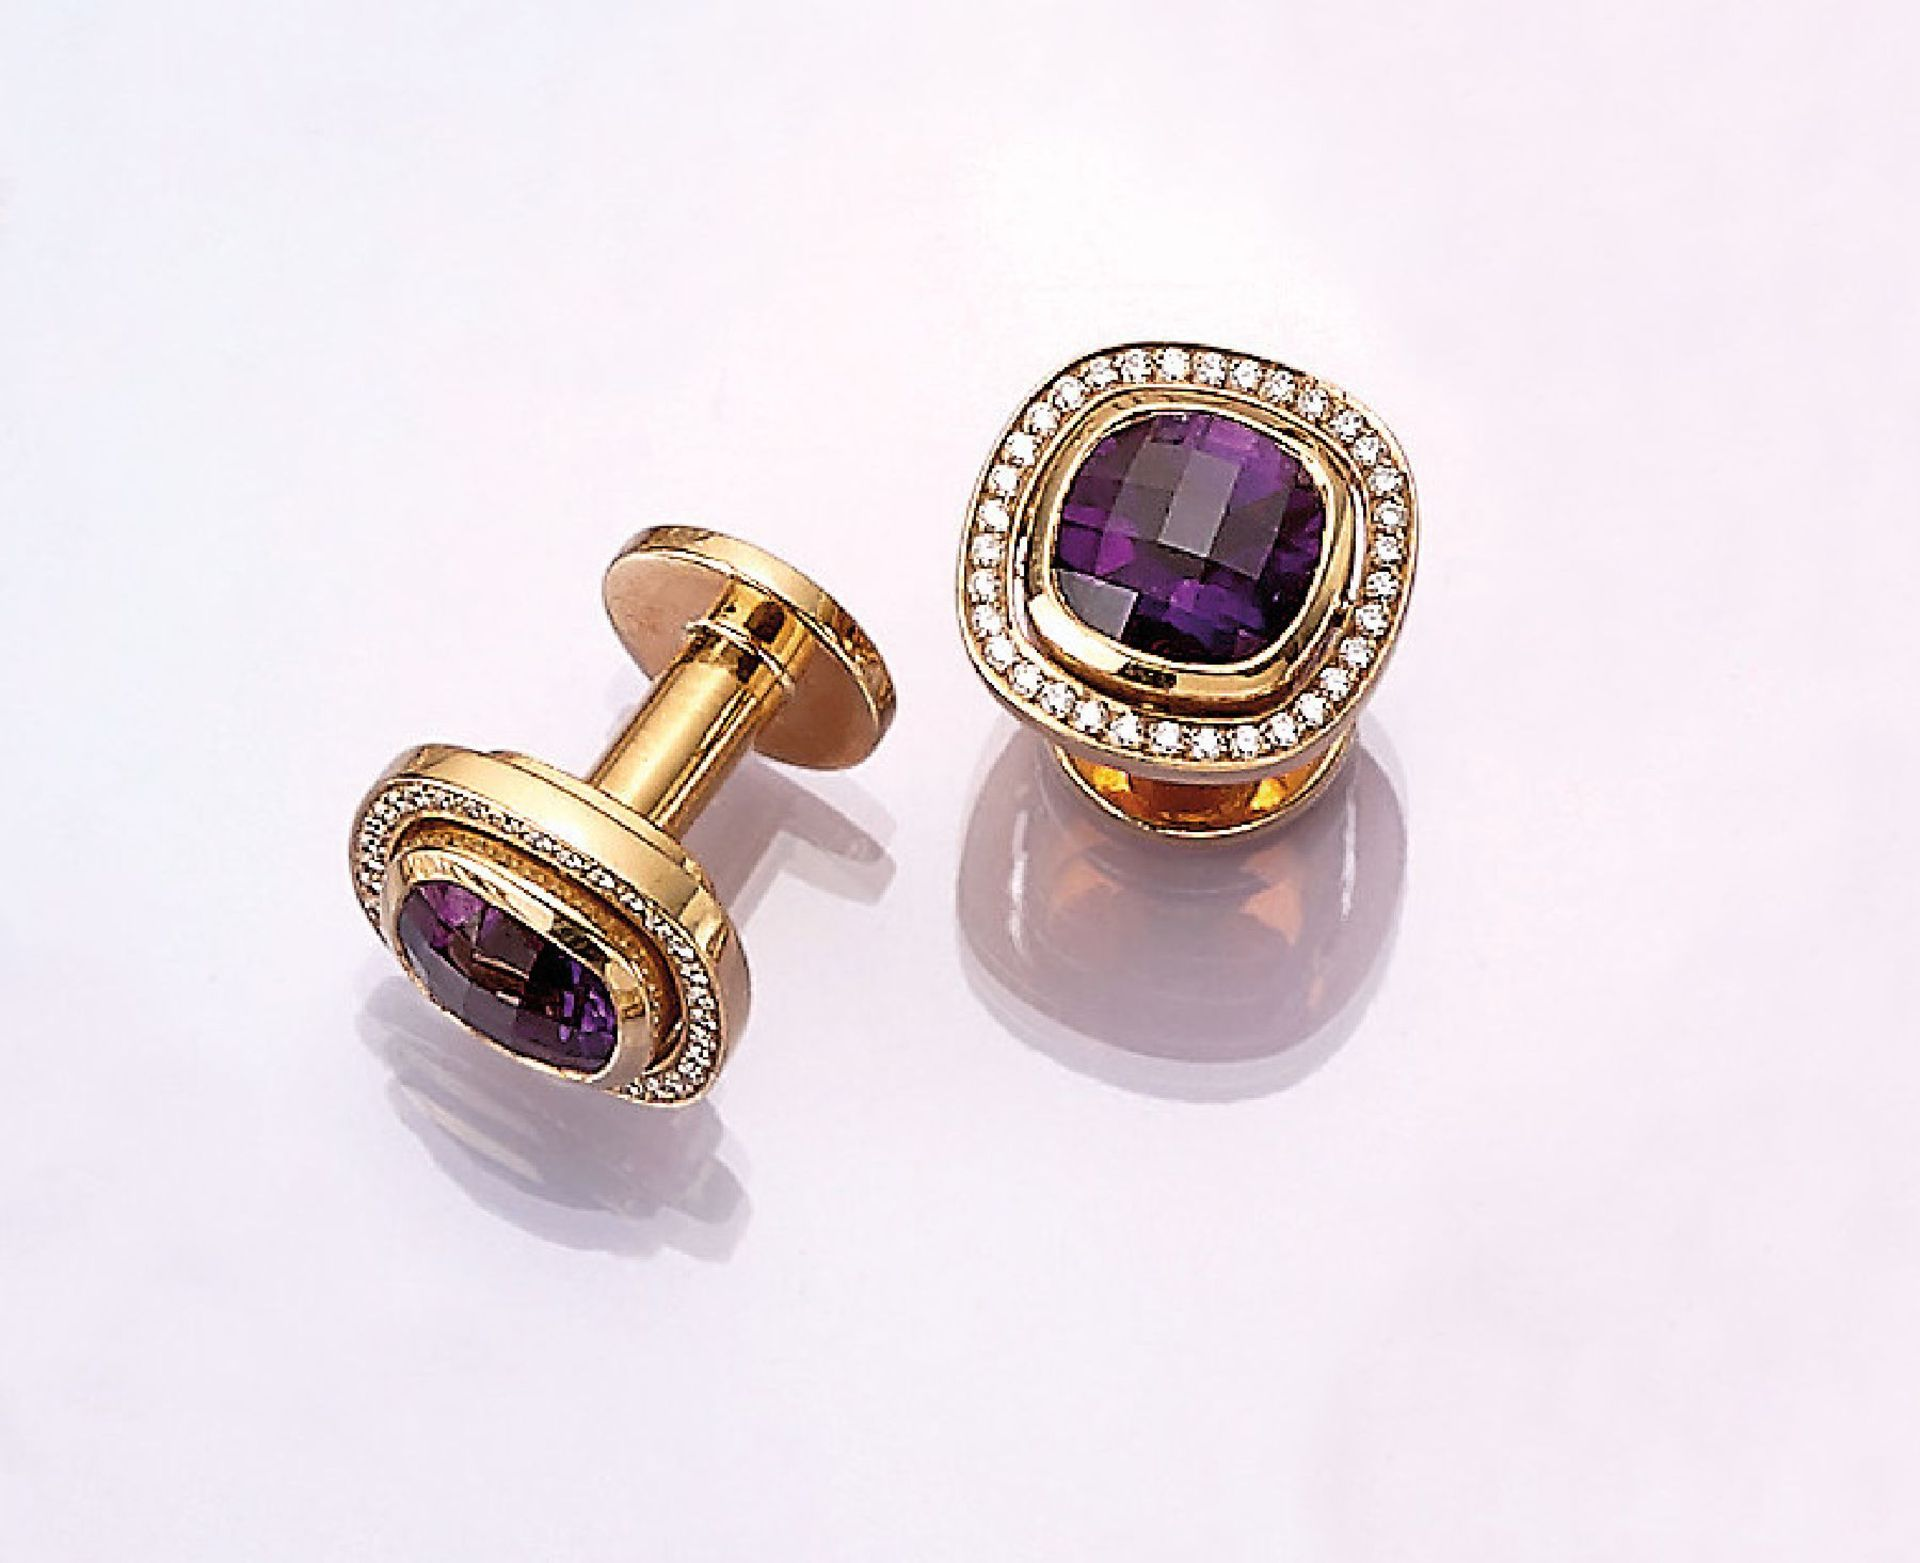 Los 31526 - Pair of 18 kt gold cufflinks with amethyst and brilliants , YG 750/000 tested, 2 amethysts in